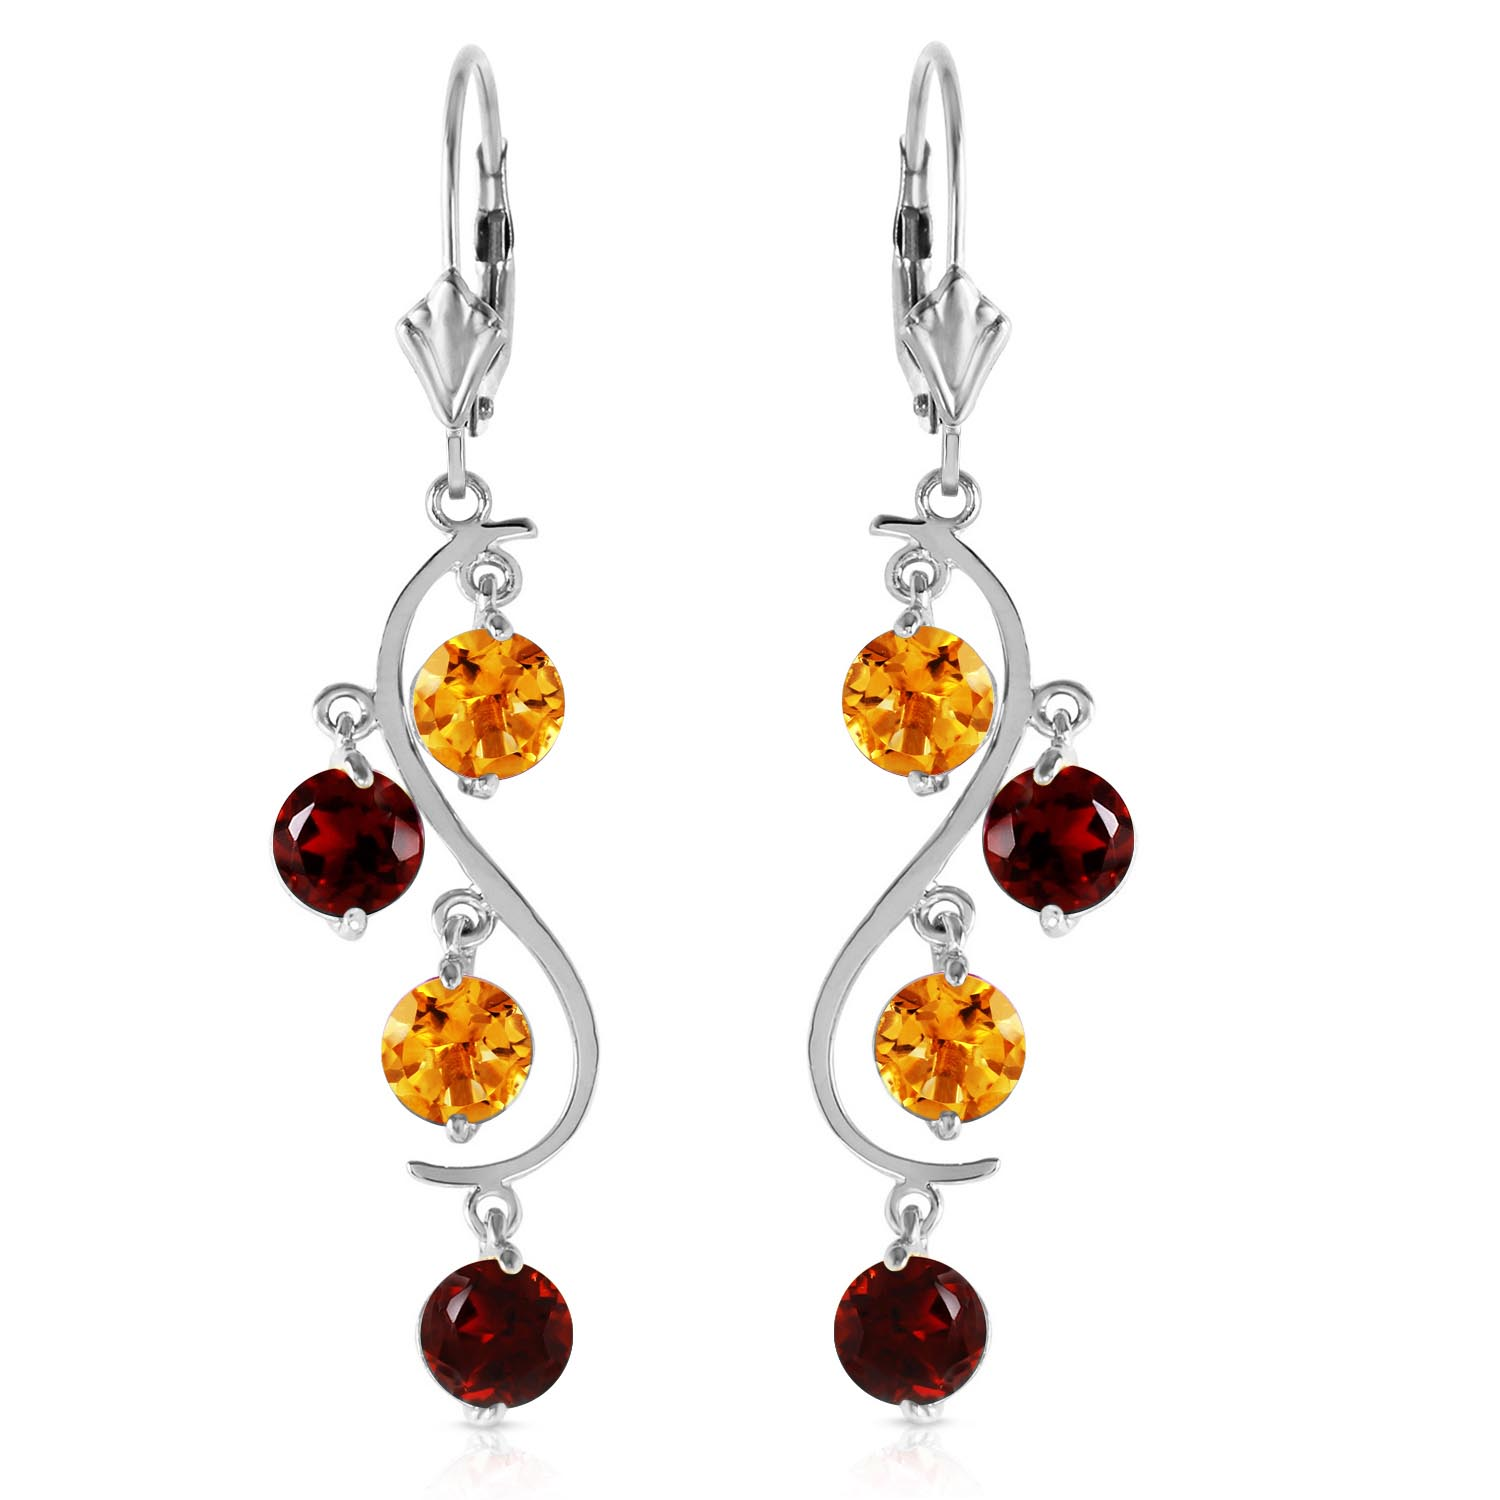 Citrine and Garnet Dream Catcher Drop Earrings 4.6ctw in 9ct White Gold